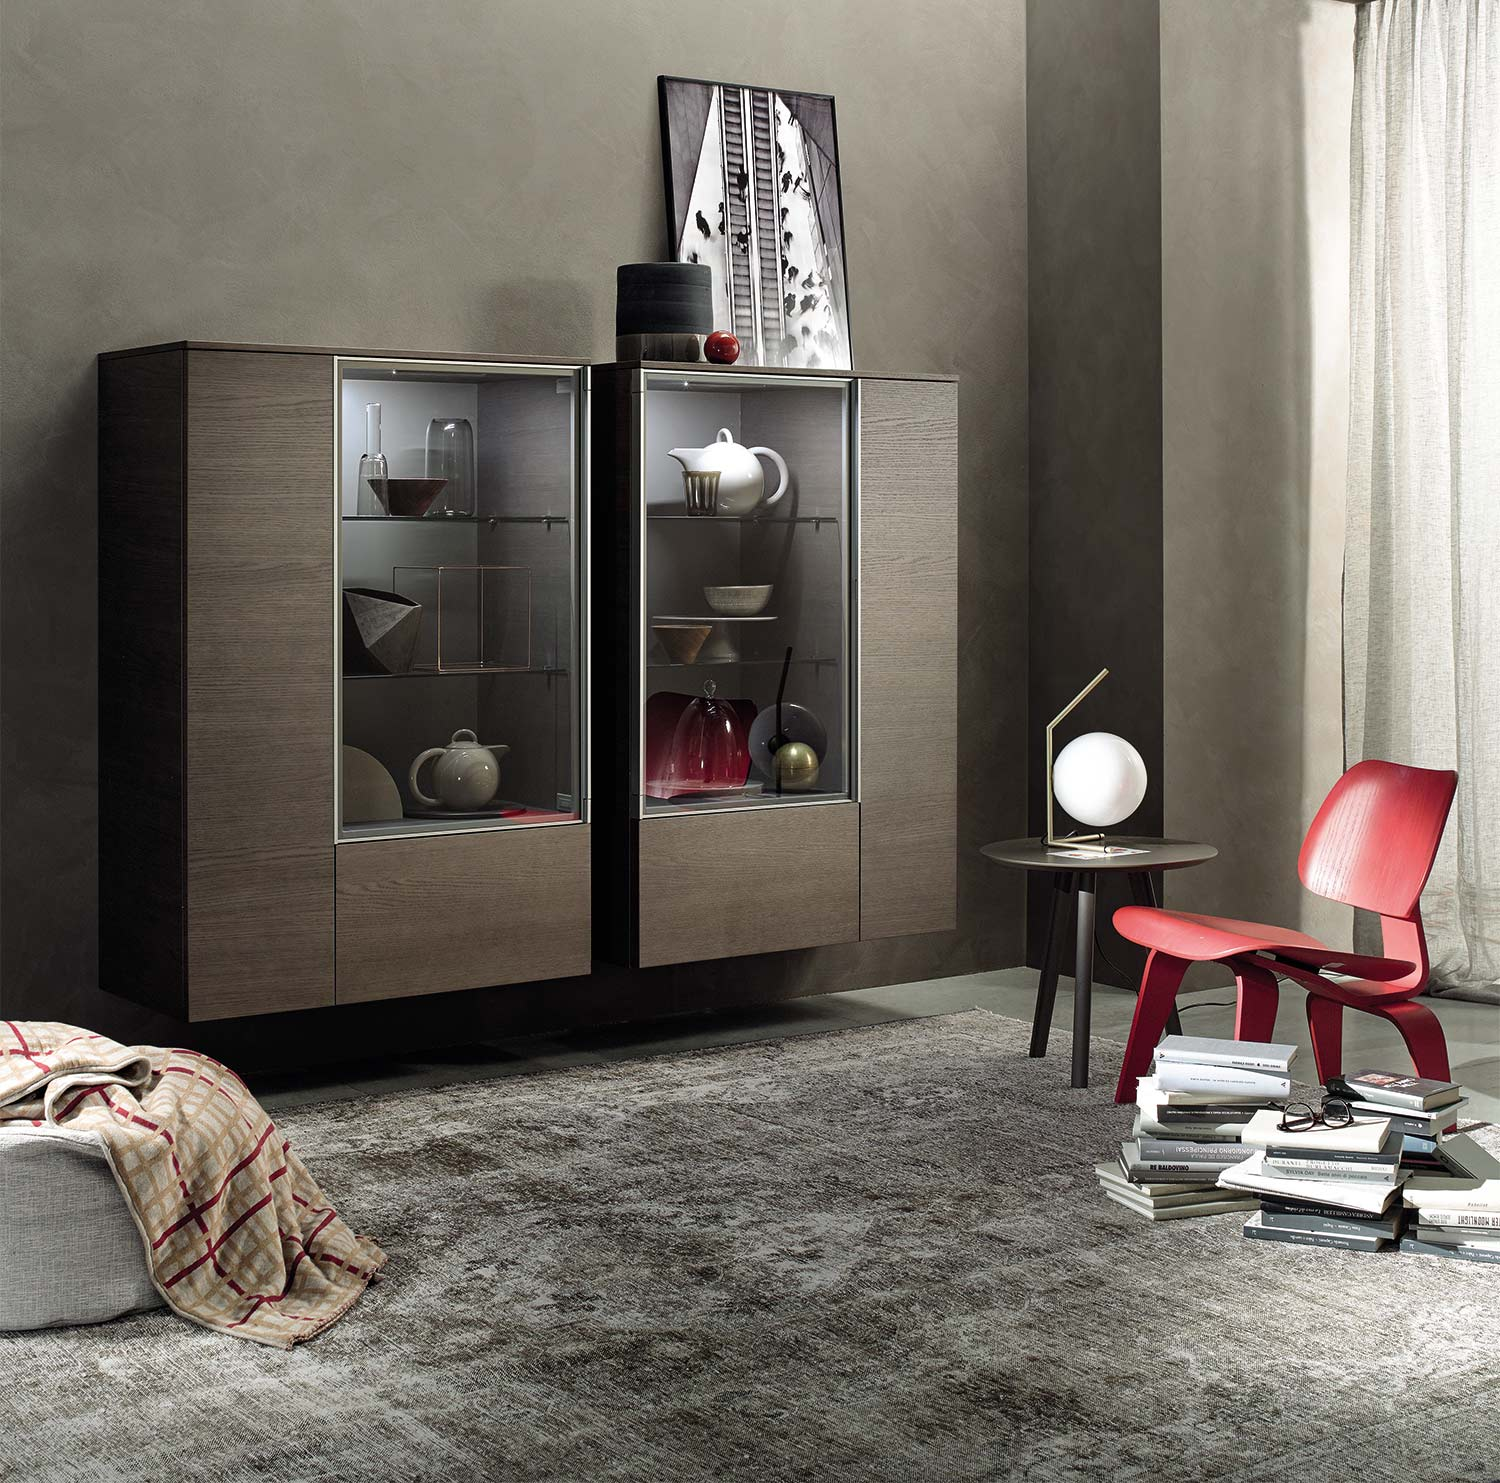 vitrinen glasschr nke wieder im trend livarea. Black Bedroom Furniture Sets. Home Design Ideas